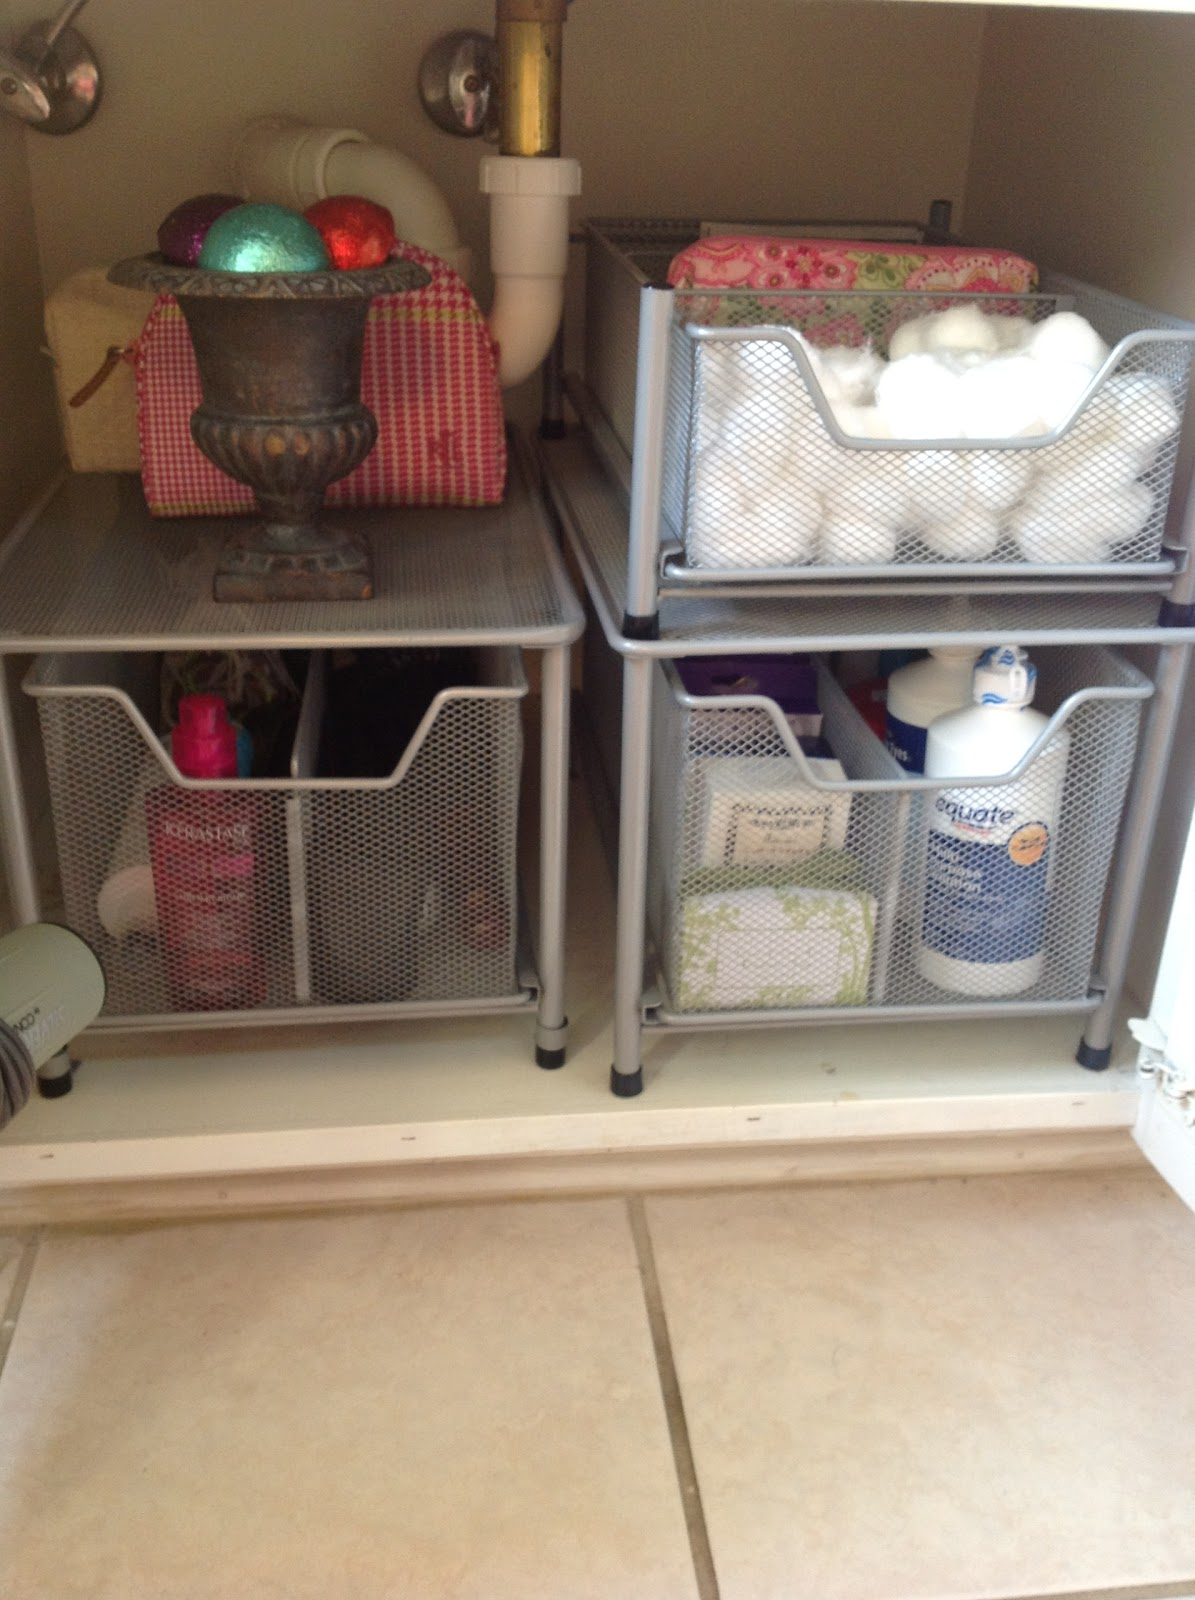 Perfect The Cabinet Use Storage E Above Shelf For Hair Dryer Source